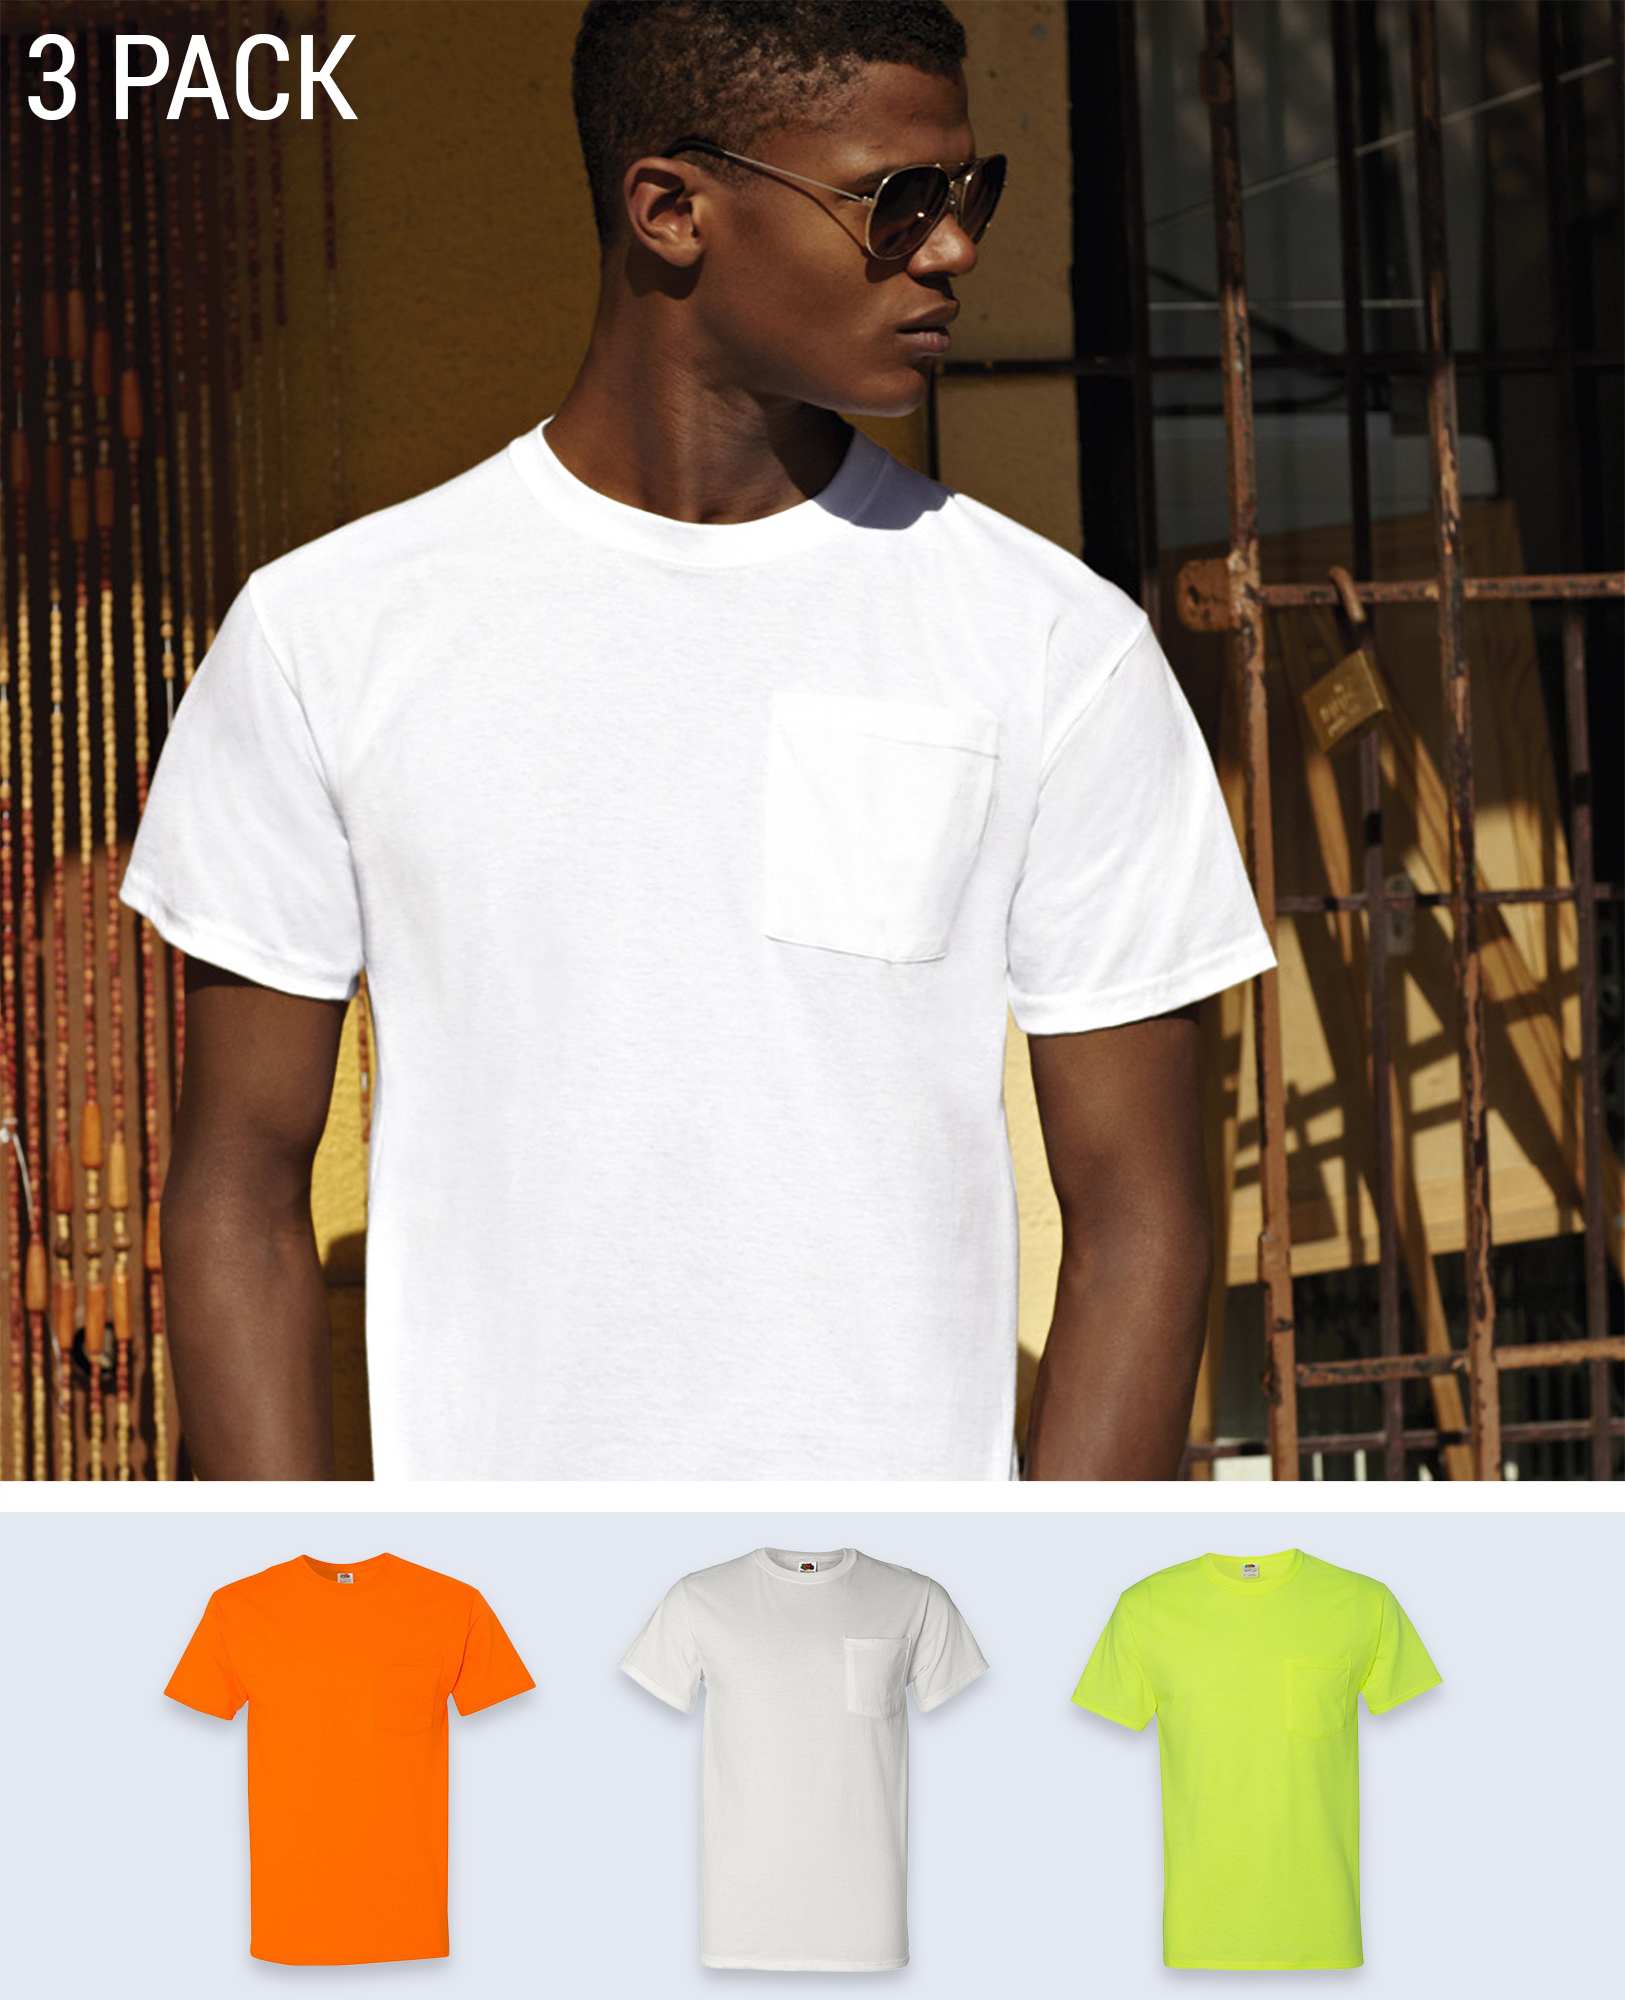 3 pack Pocket T-shirt - T-Shirts - Fruit of the loom - BRANMA